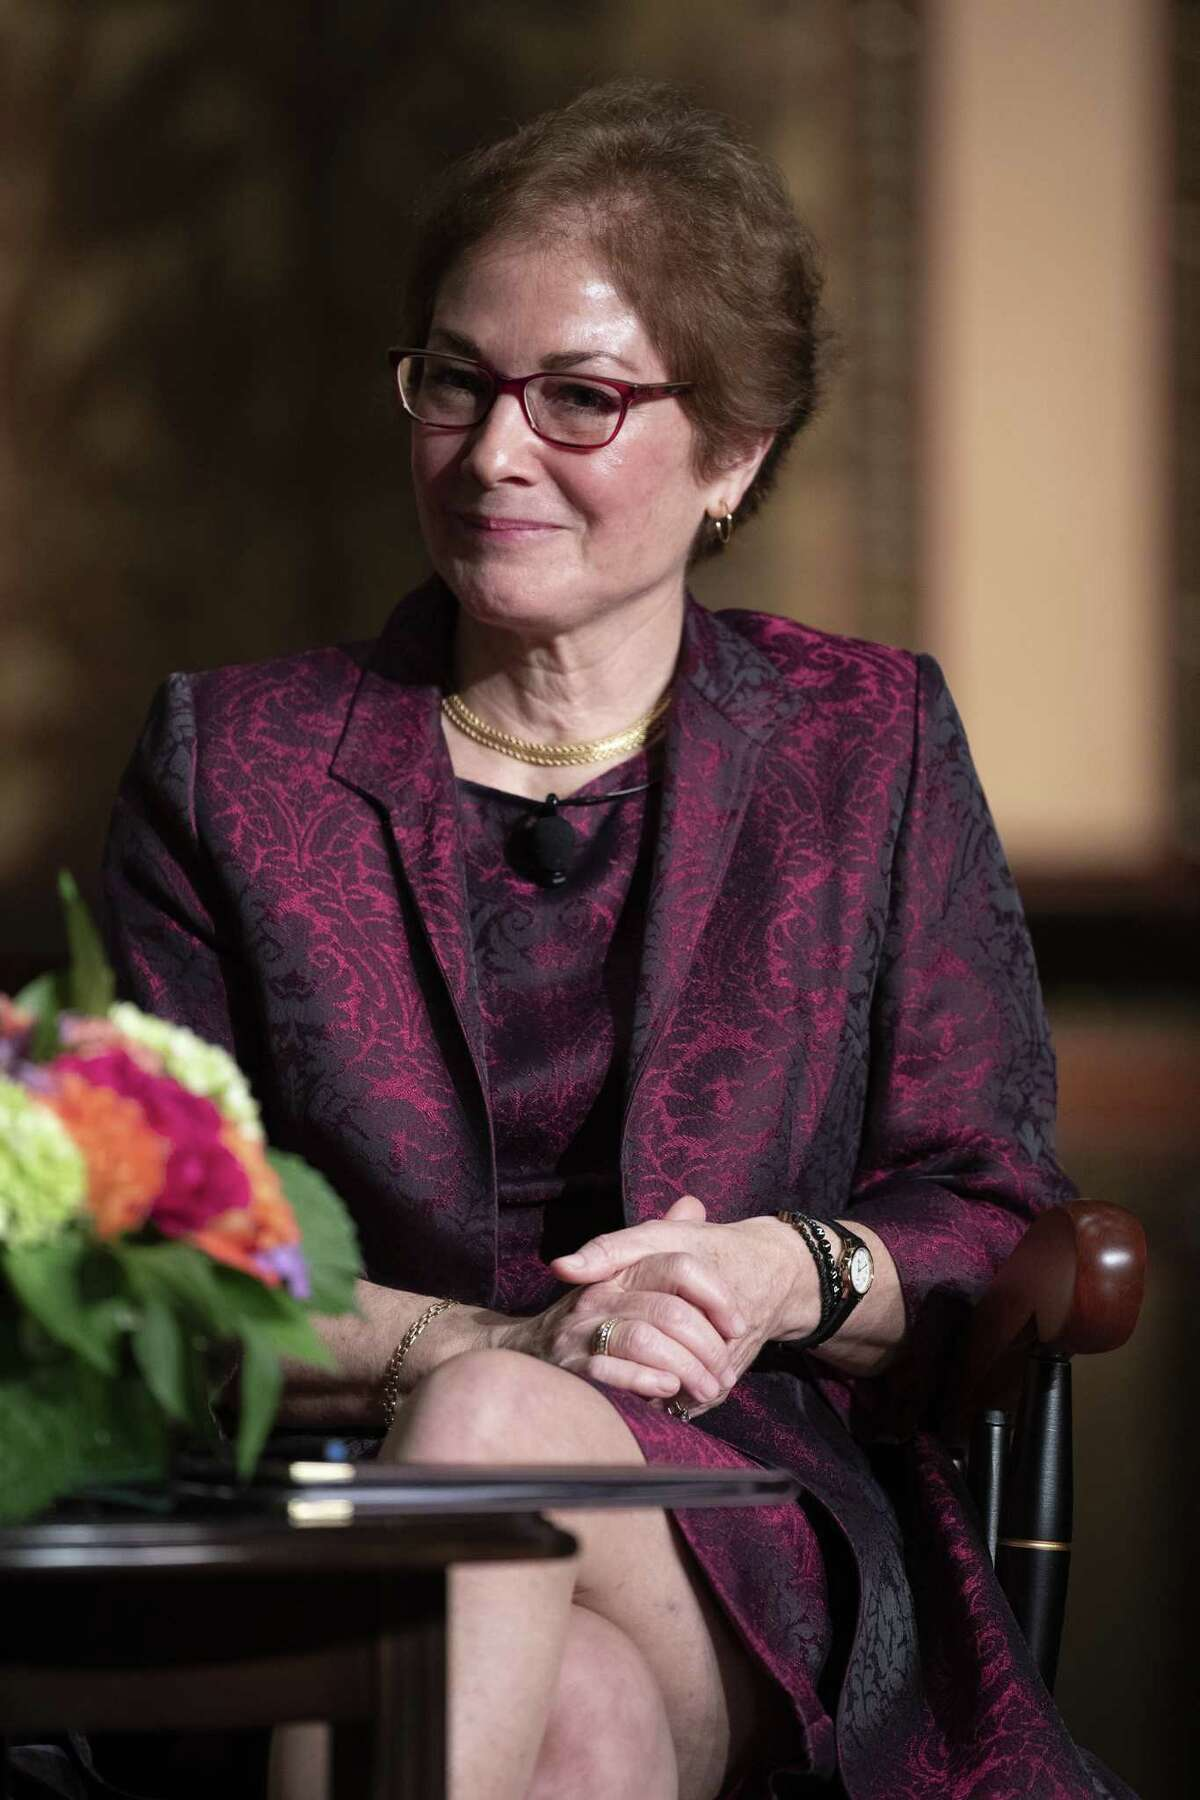 """WASHINGTON, DC - FEBRUARY 12: Former U.S. AmbassadorA Marie Yovanovitch attends a ceremony awarding her theA Trainor Award for """"Excellence in the Conduct of Diplomacy"""" at Georgetown University on February 12, 2020 in Washington, DC. Yovanovitch made her first public appearance since testifying before Congress in the impeachment proceedings to accept the 2020 Trainor Award from the Institute for the Study of Diplomacy, an honor previously presented to former Secretary of State Madeleine Albright, then-U.S. Secretary of Energy Ernest Moniz and then-United Nations Secretary General Kofi Annan. (Photo by Tasos Katopodis/Getty Images)"""